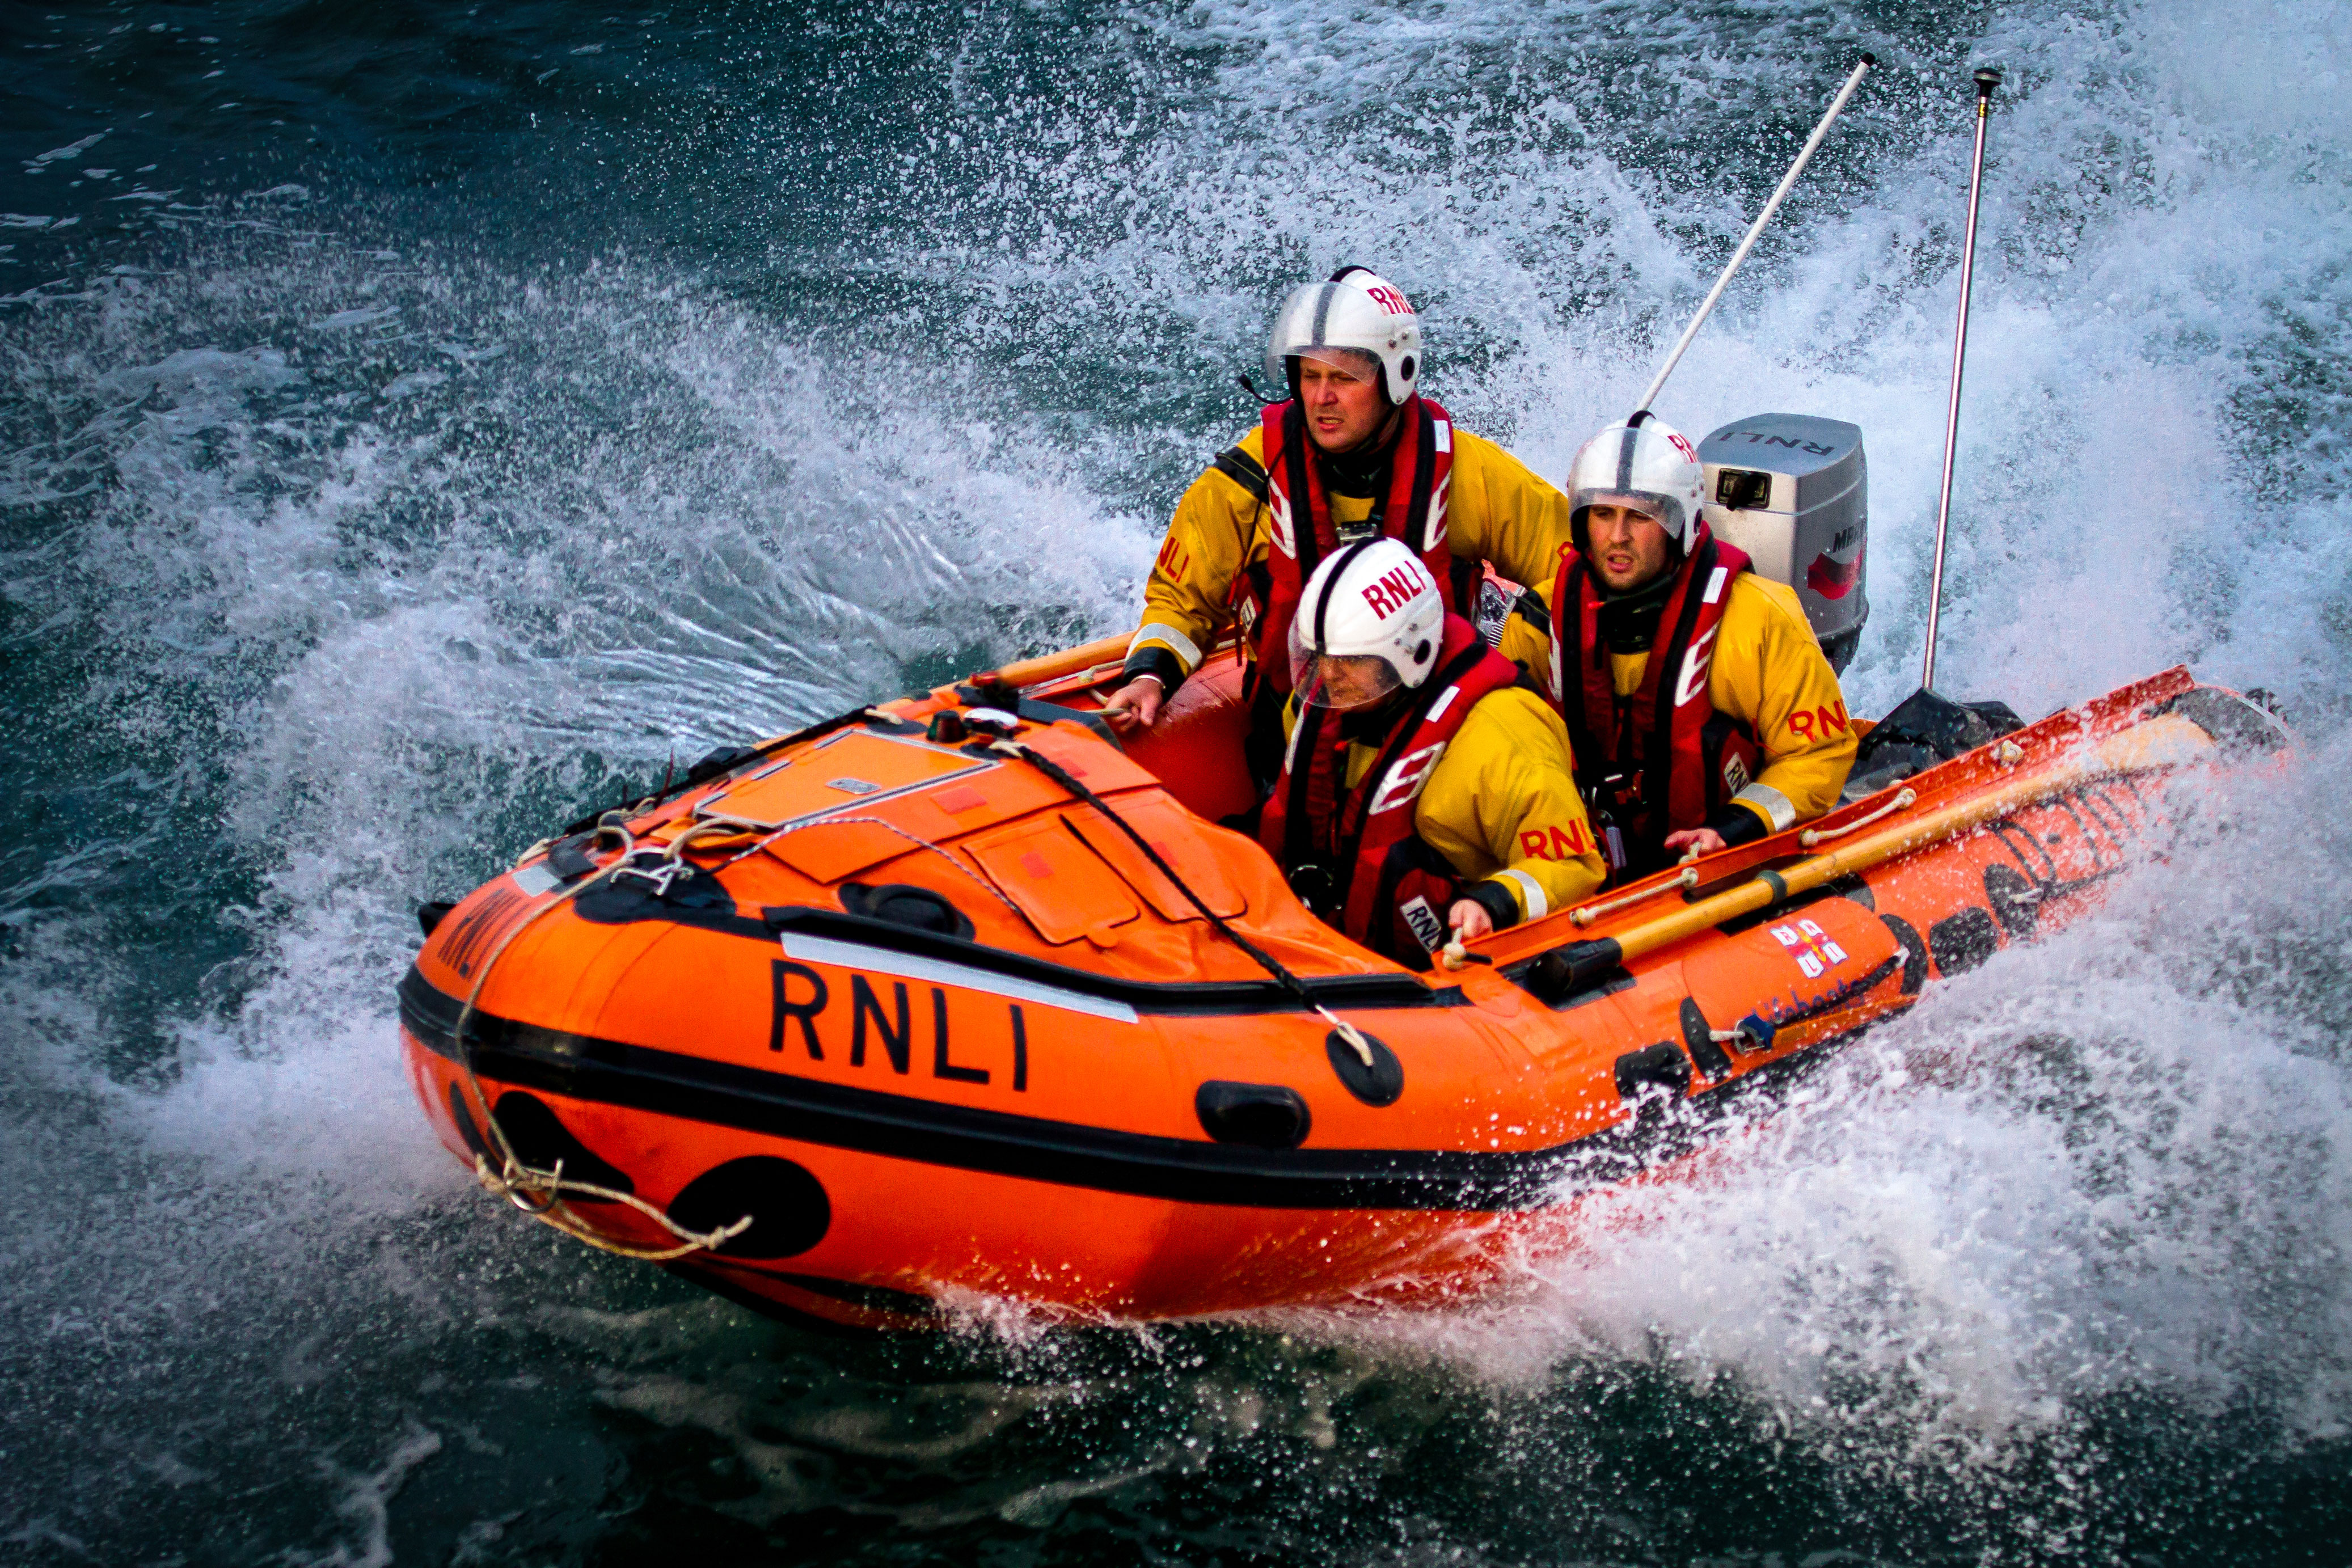 Stock image of an RNLI D class inshore lifeboat